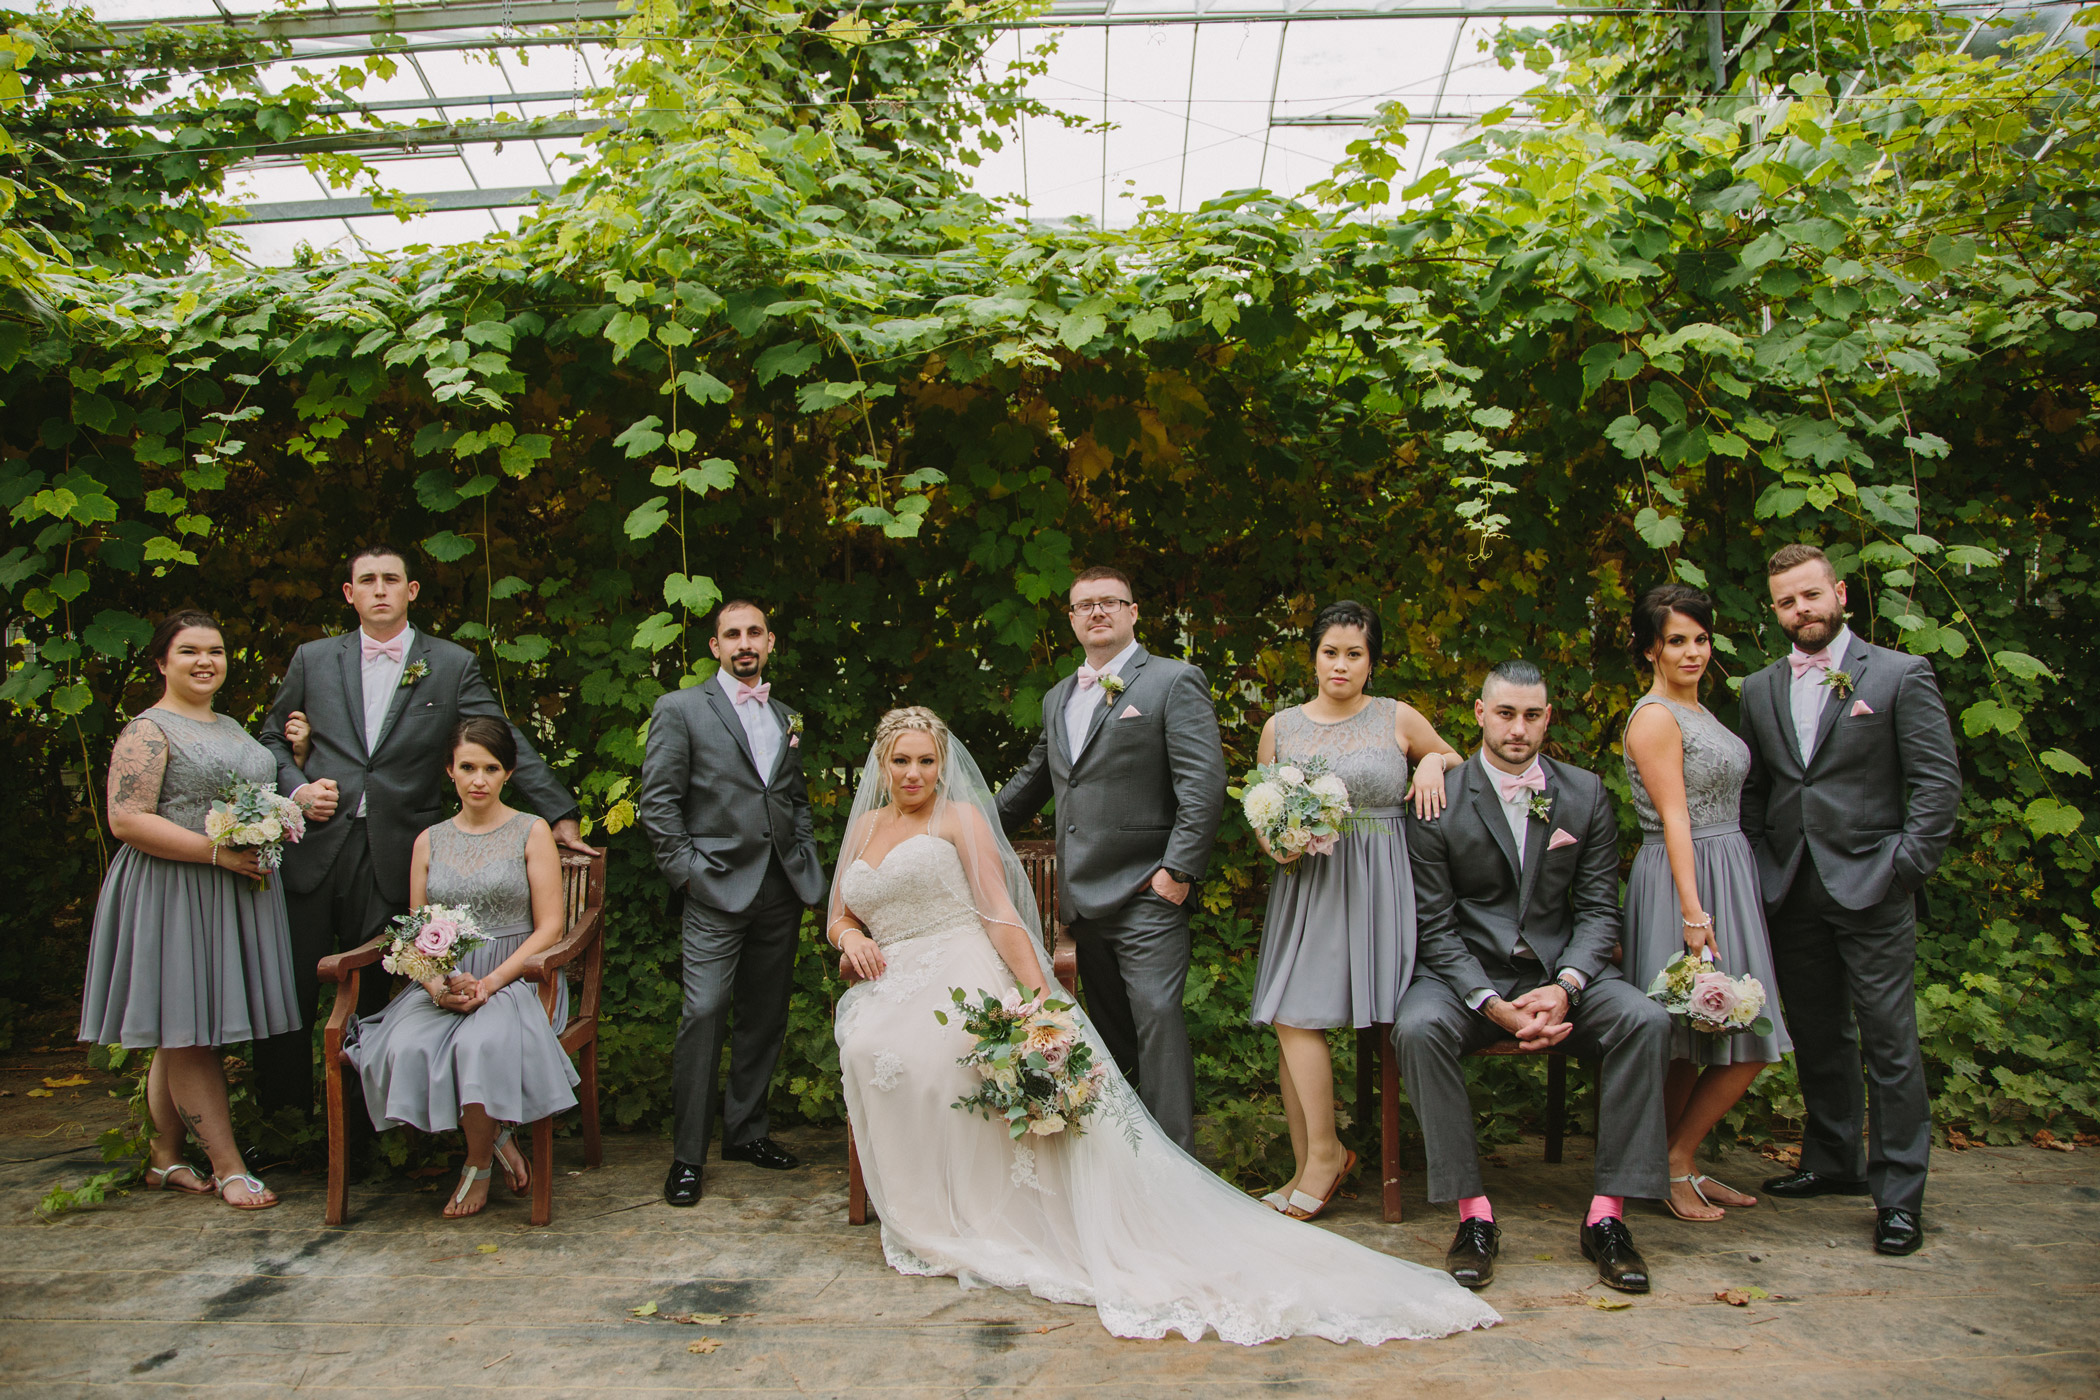 Wedding Party Portrait at Glasshouse Estate Winery